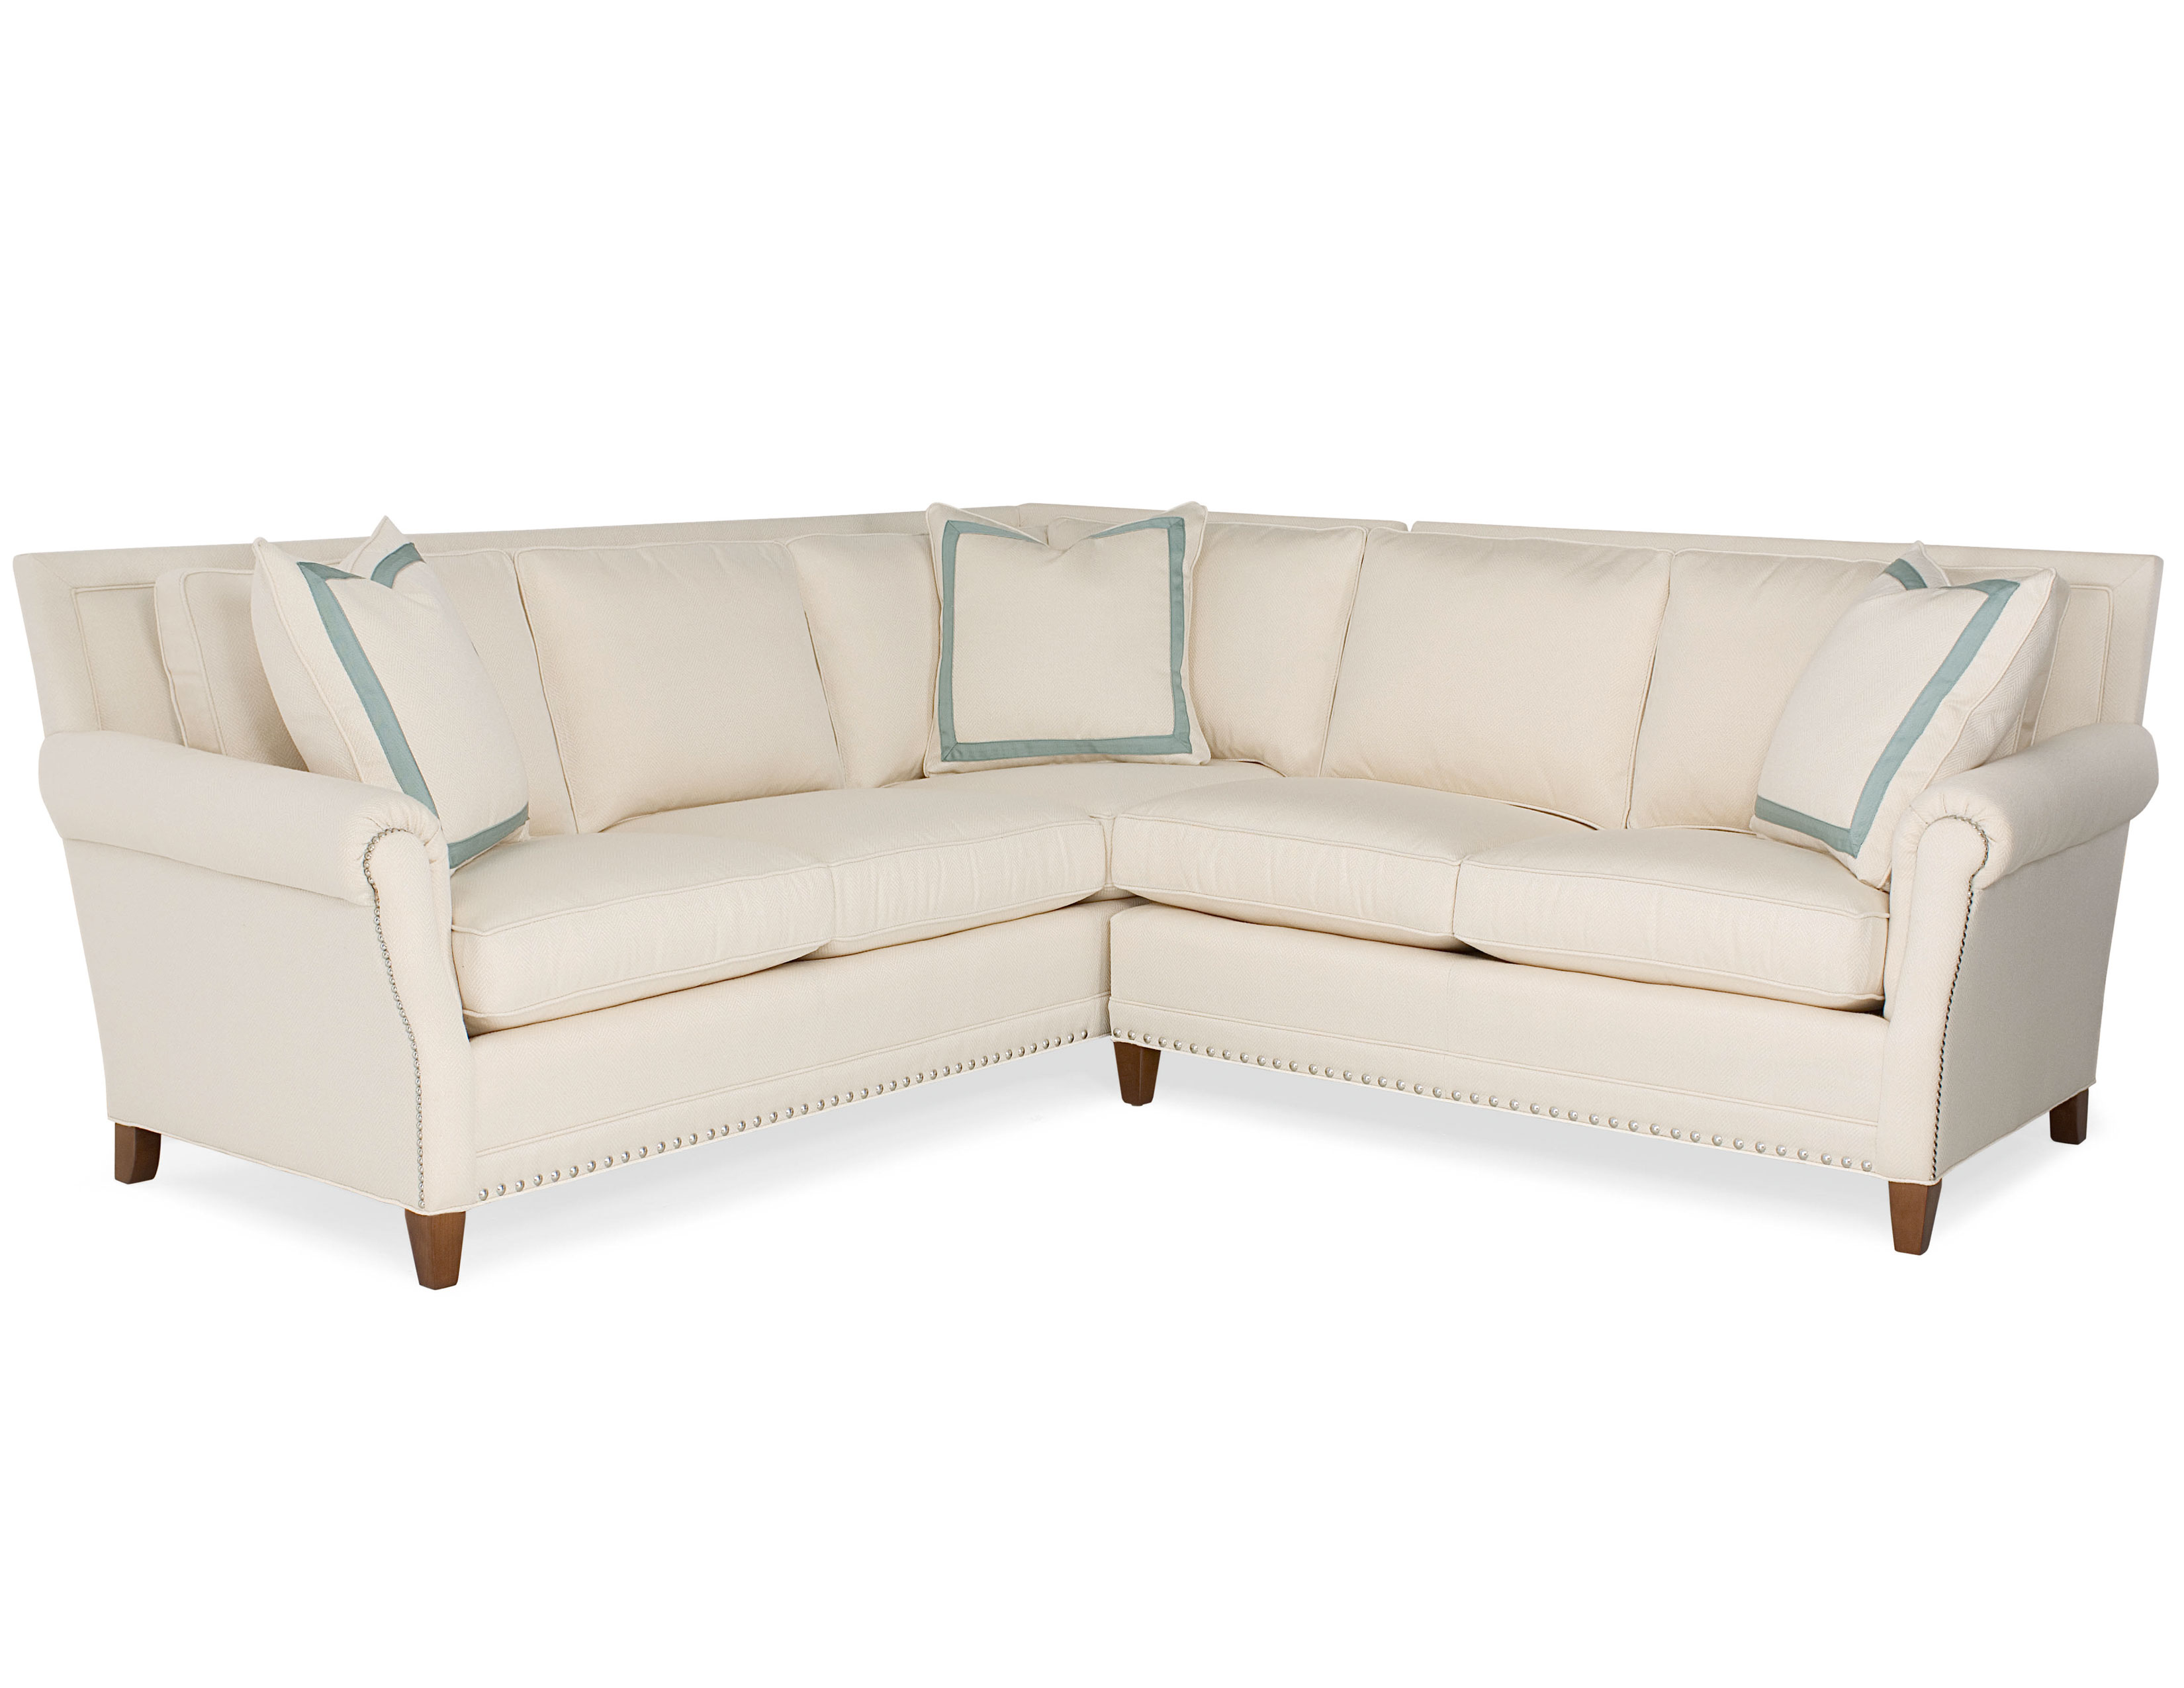 Miraculous Leighton Two Piece Sectional Made To Order Sofas And Lamtechconsult Wood Chair Design Ideas Lamtechconsultcom